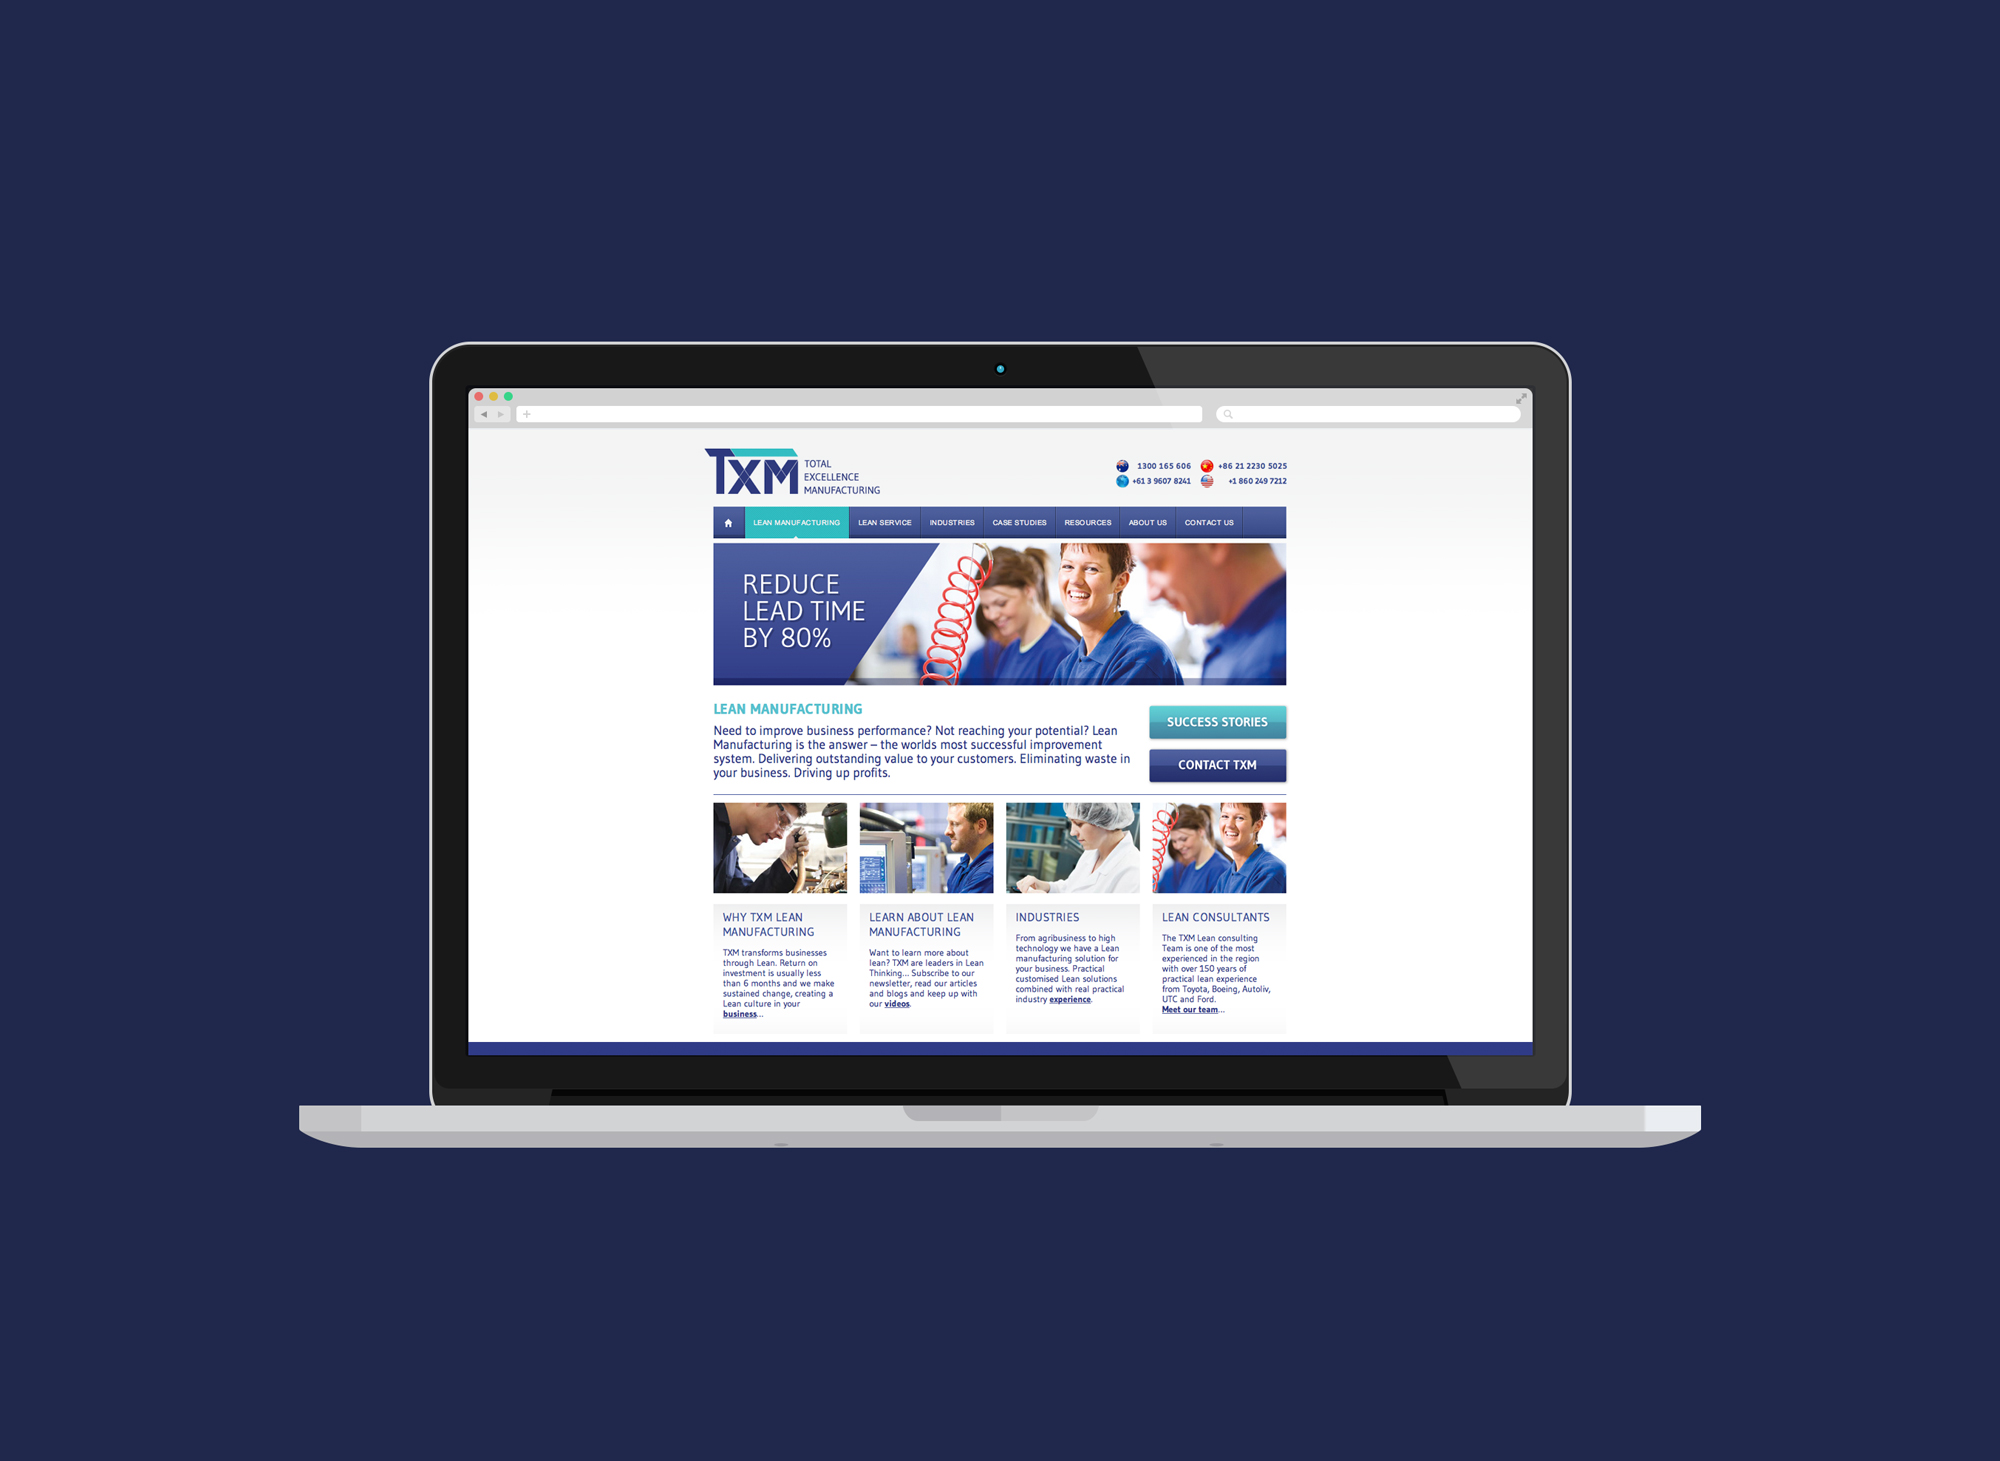 TXM Lean Solutions Website Design